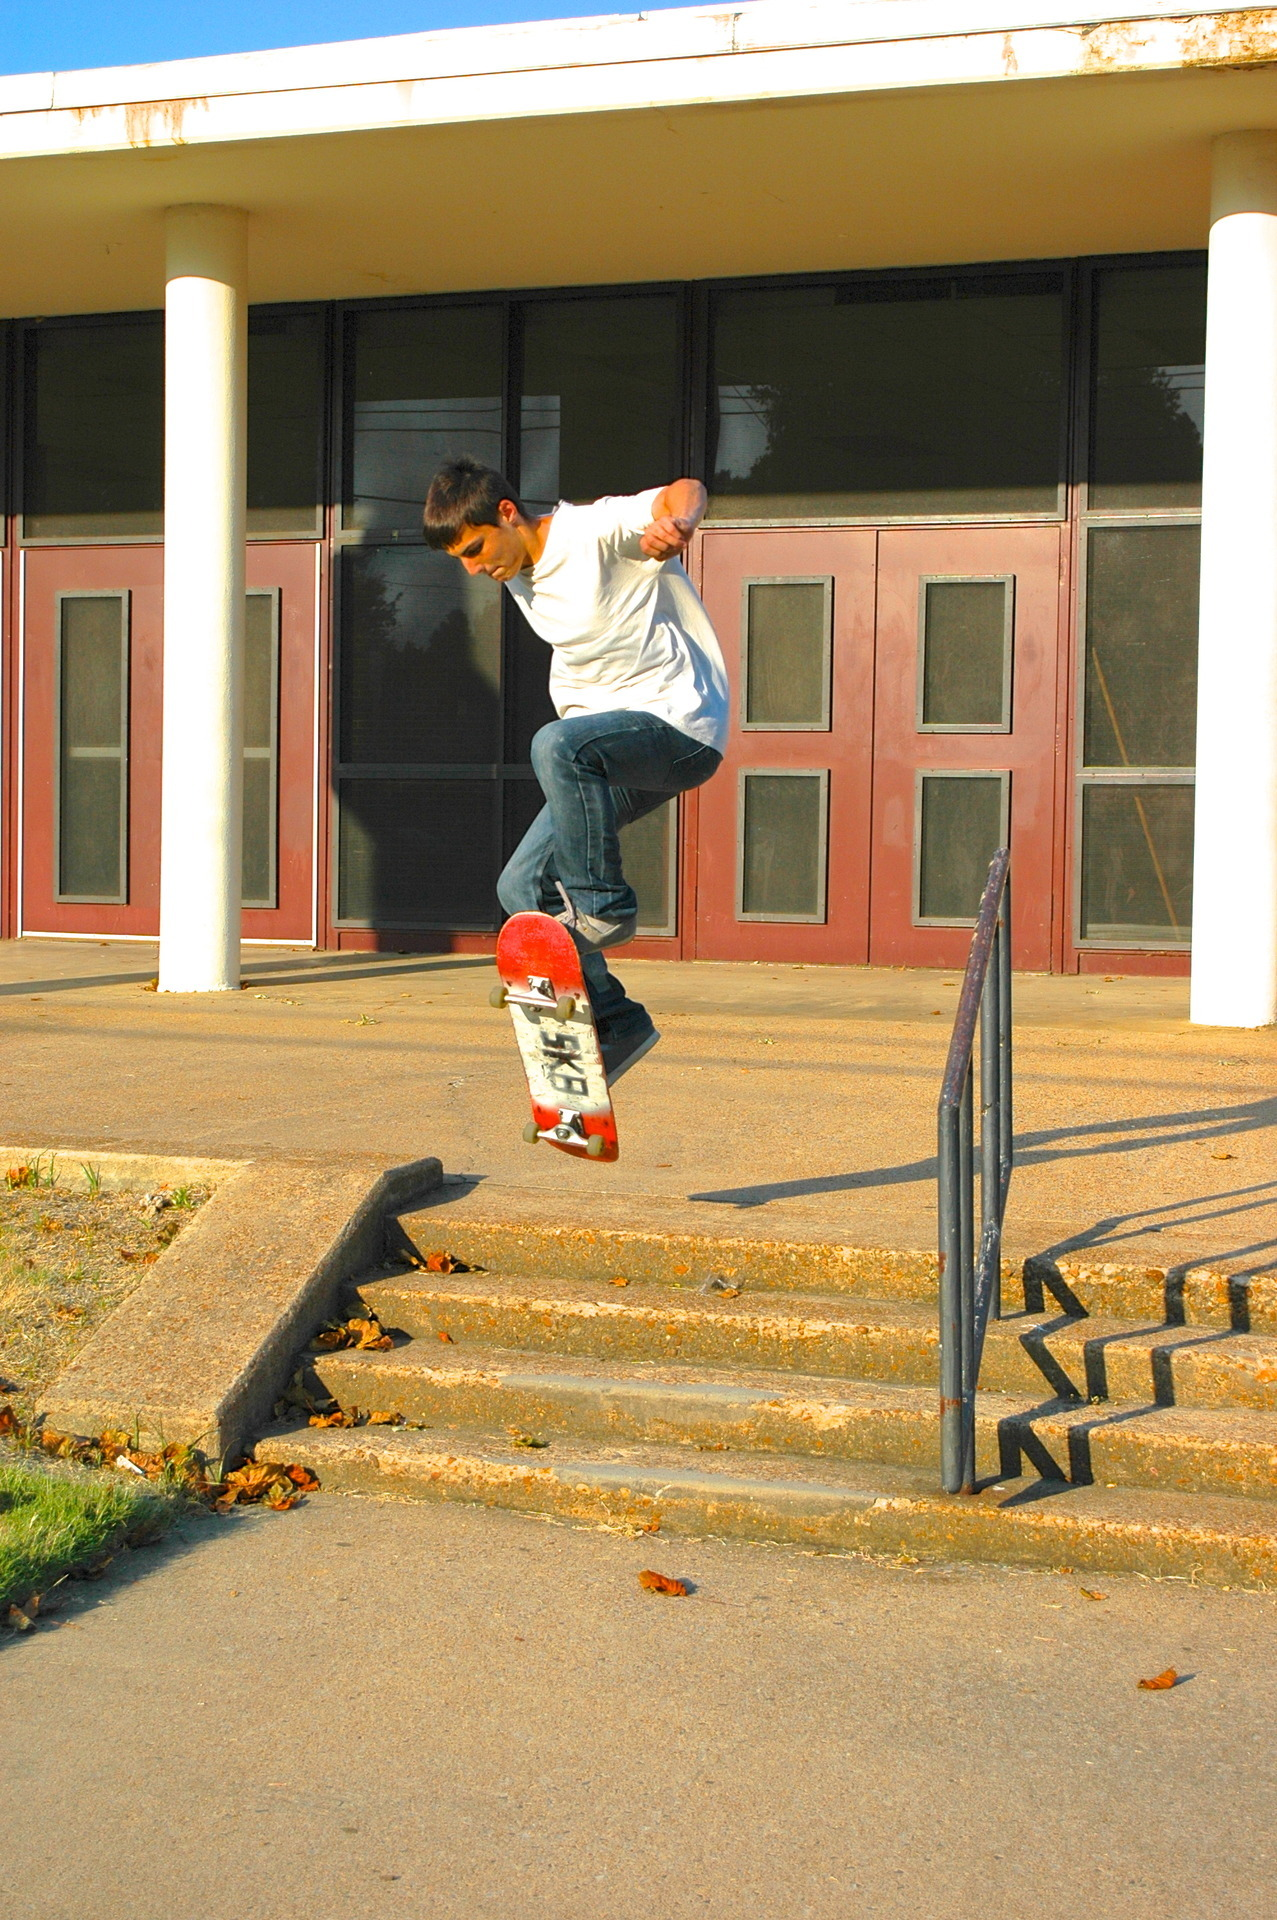 Darian Smith Photo by Jess H